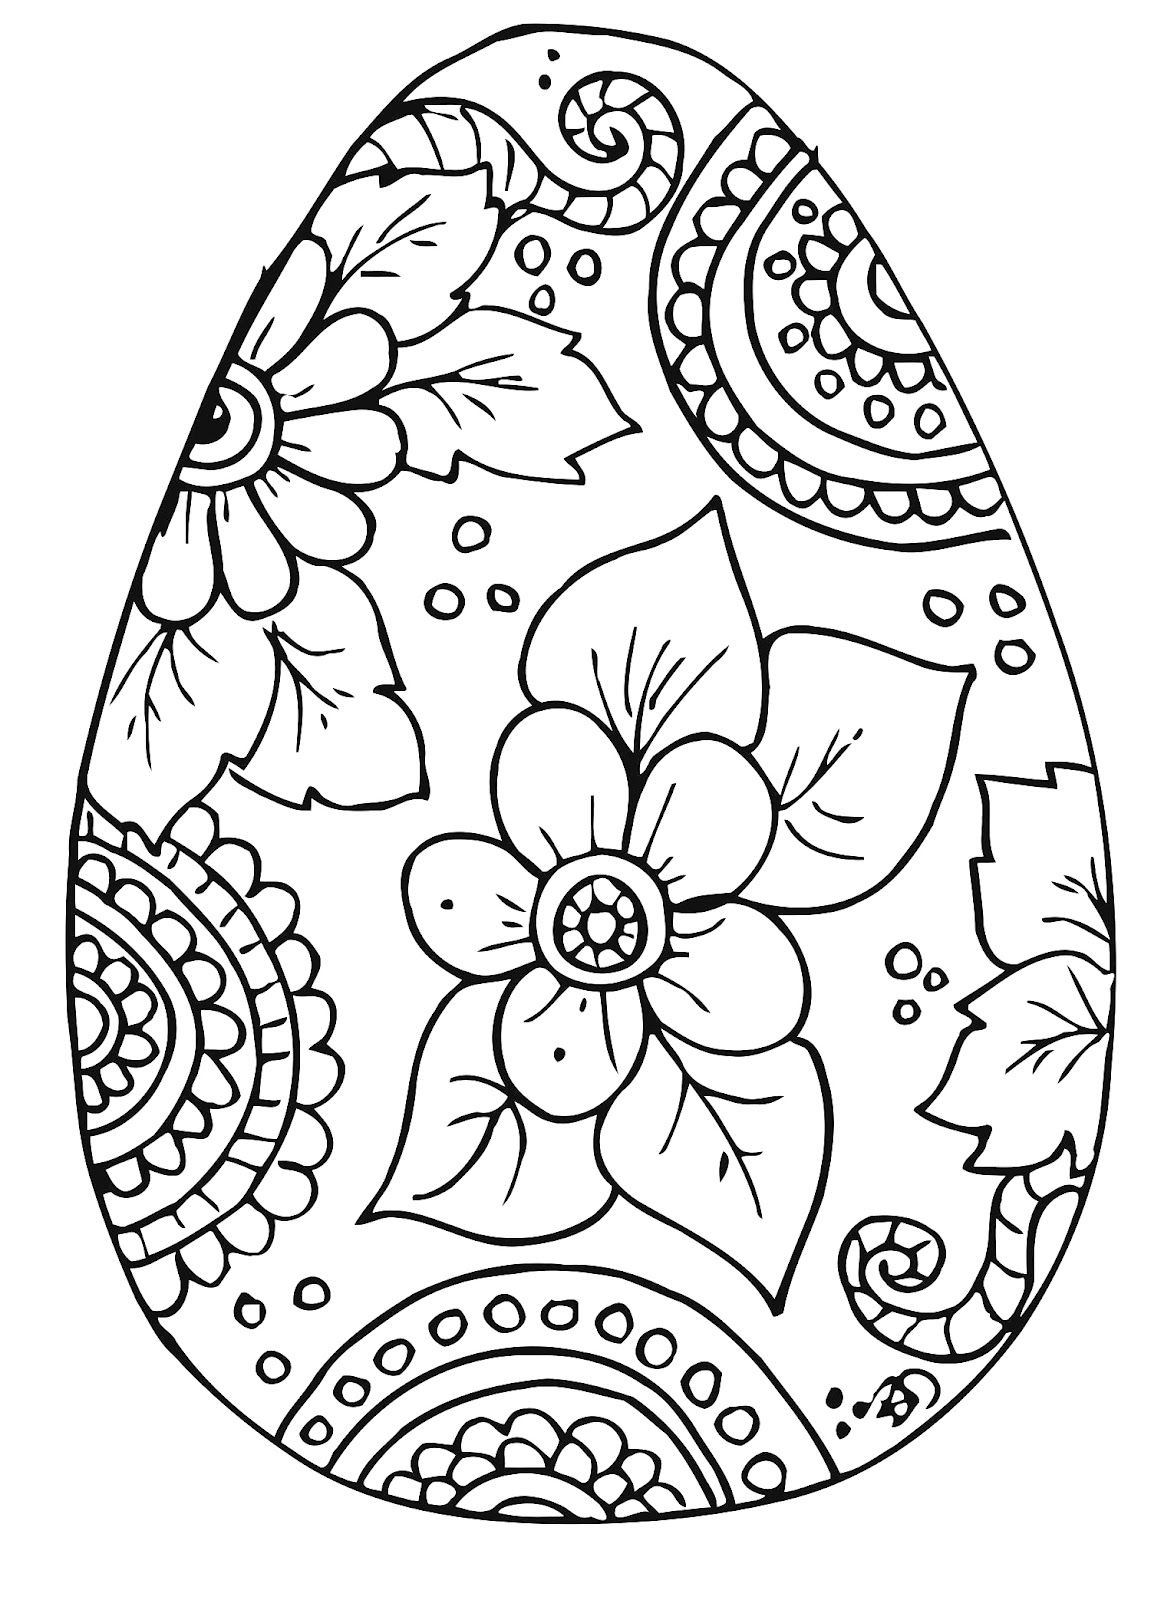 10 Cool Free Printable Easter Coloring Pages For Kids Who've Moved - Free Printable Easter Coloring Pages For Toddlers